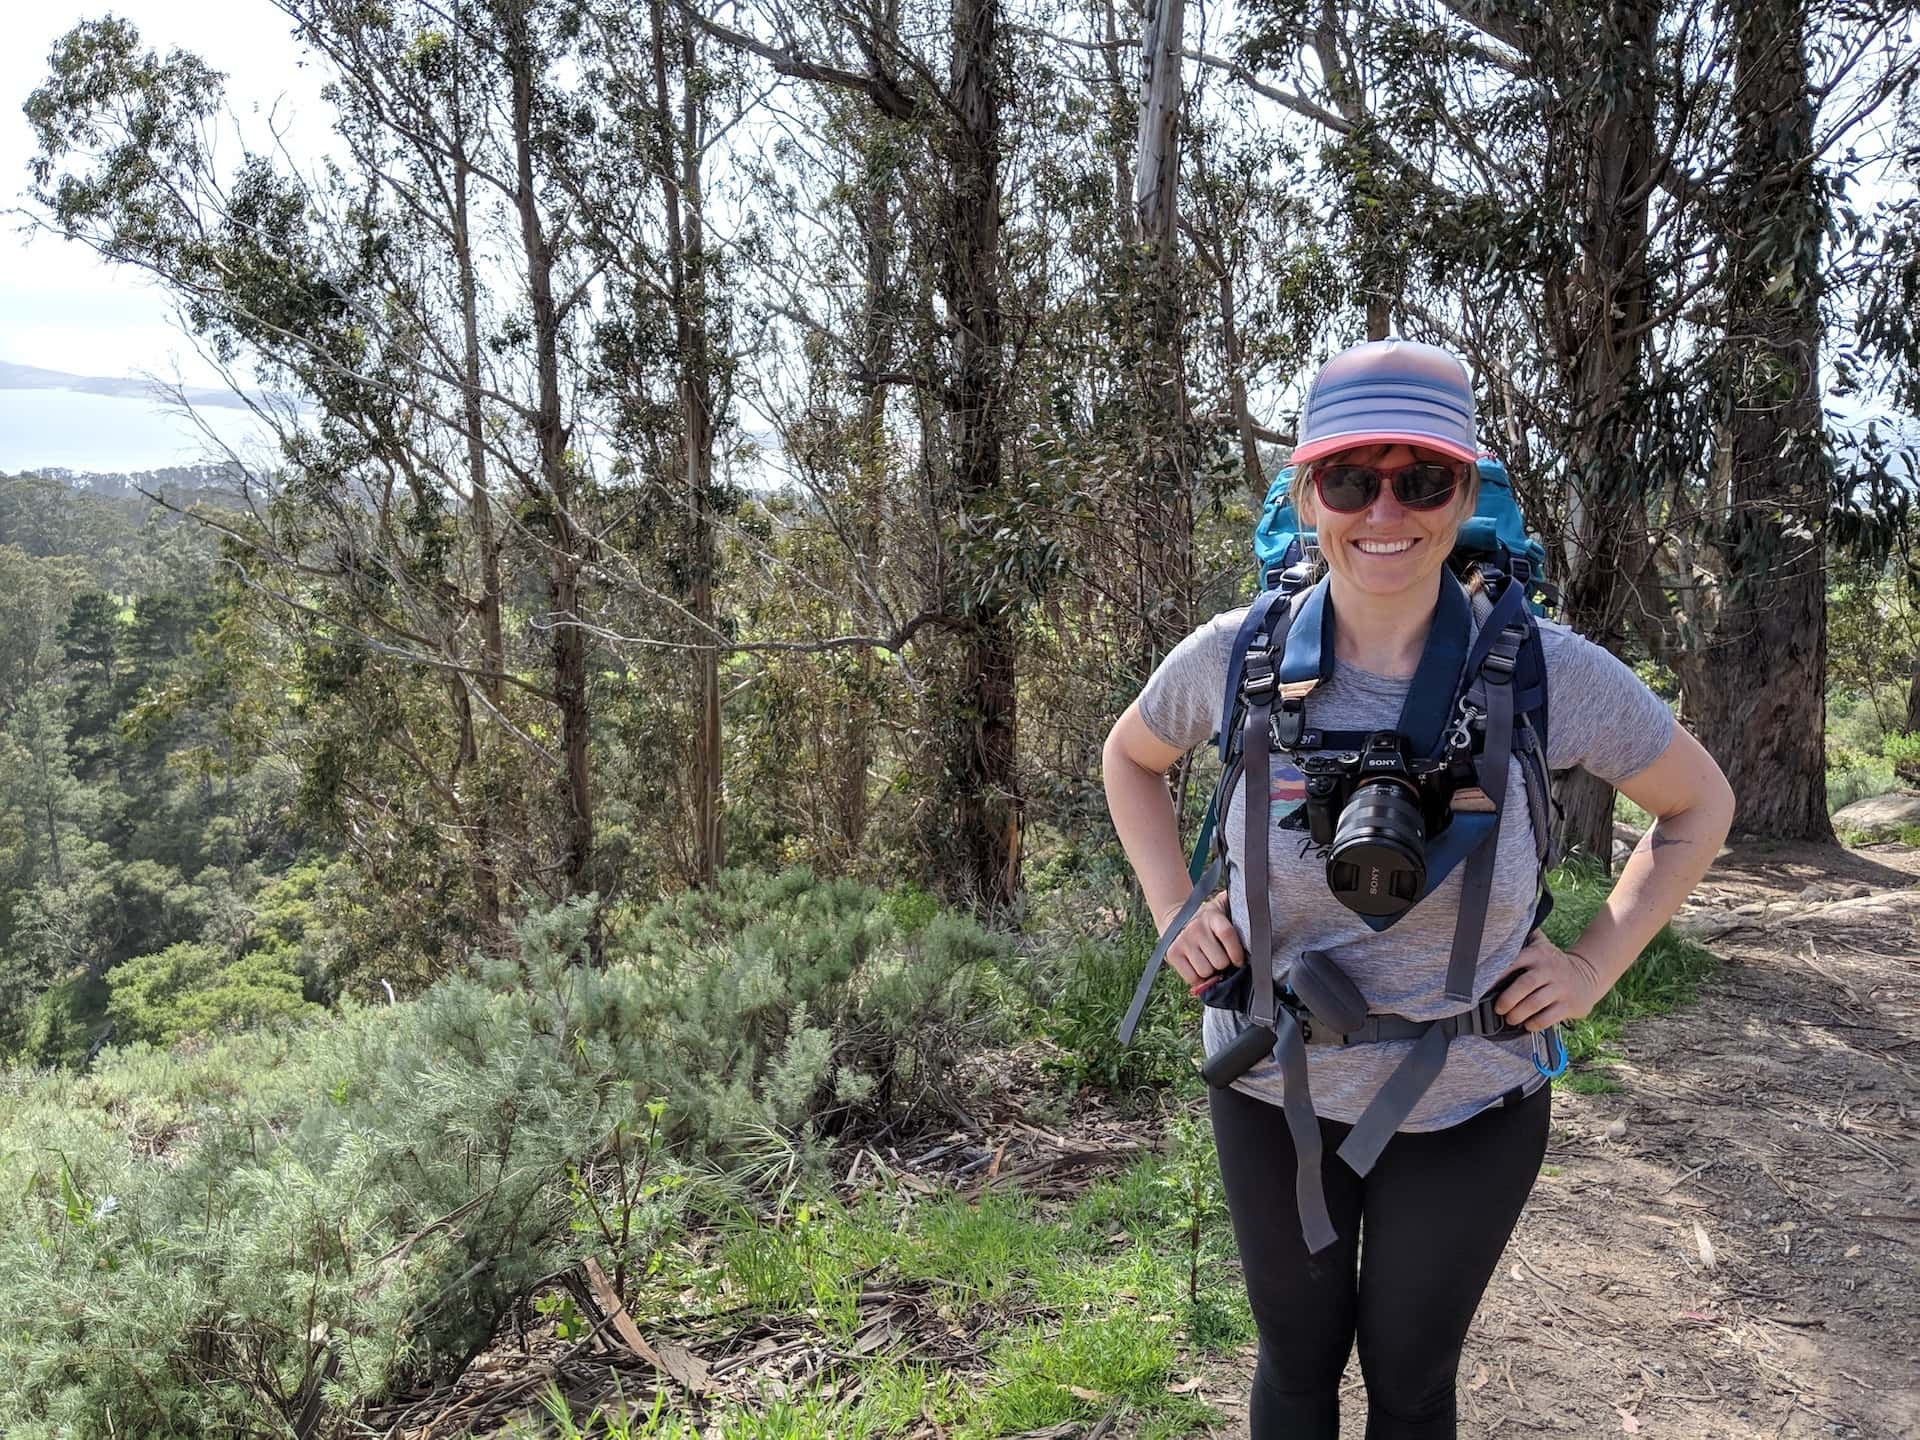 Get tips for comfortably carrying & hiking with a camera and learn how to protect your gear from getting damaged on the trail.